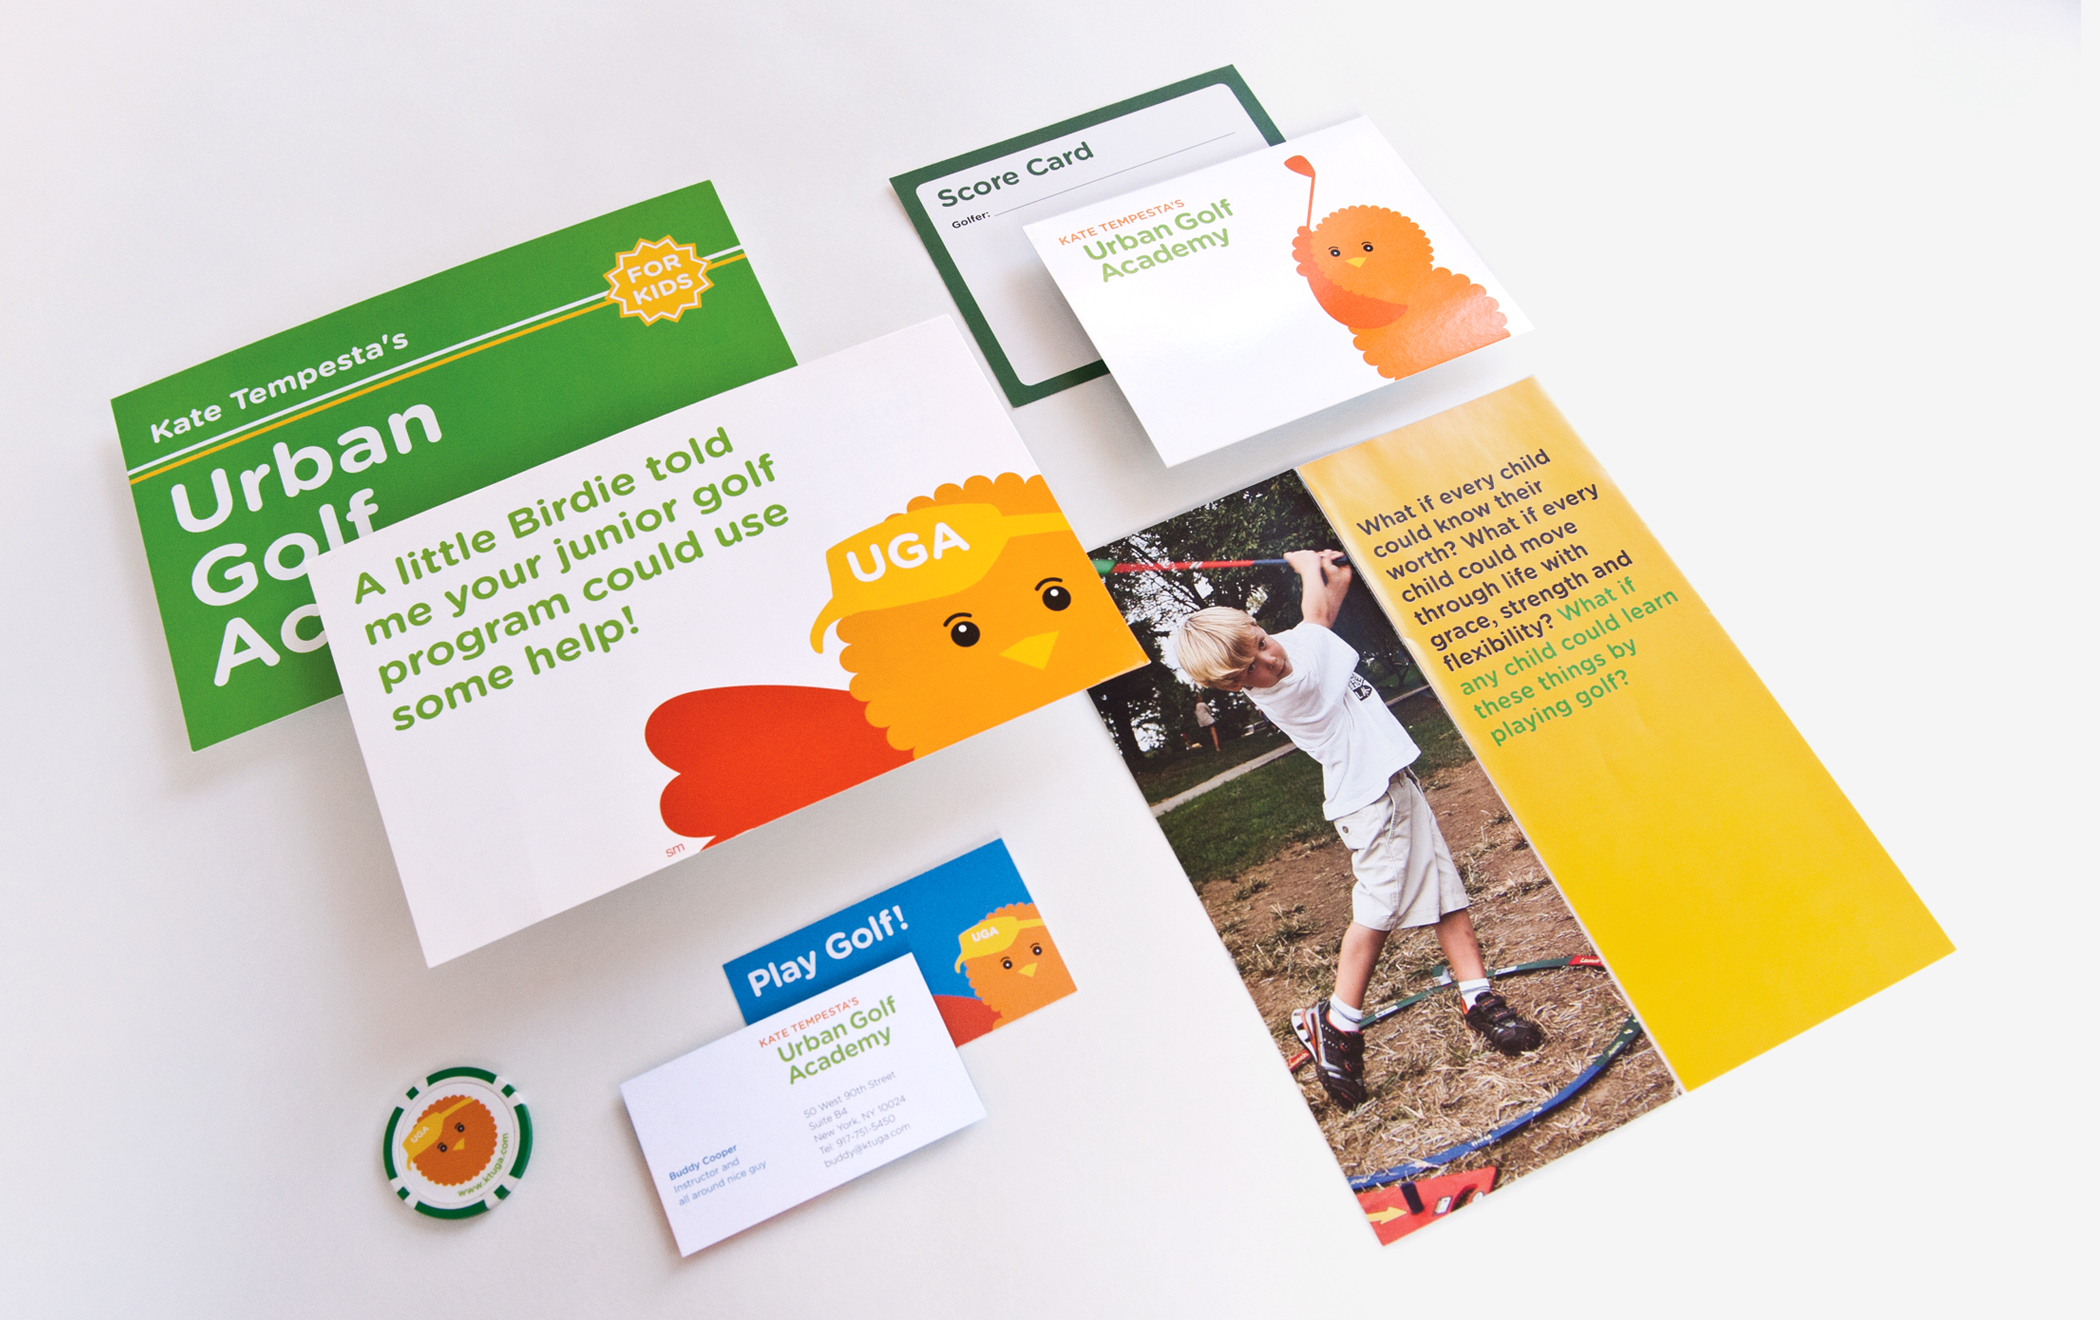 A variety of Urban Golf Academy marketing materials, including postcards, business cards, and a branded golf scorecard.